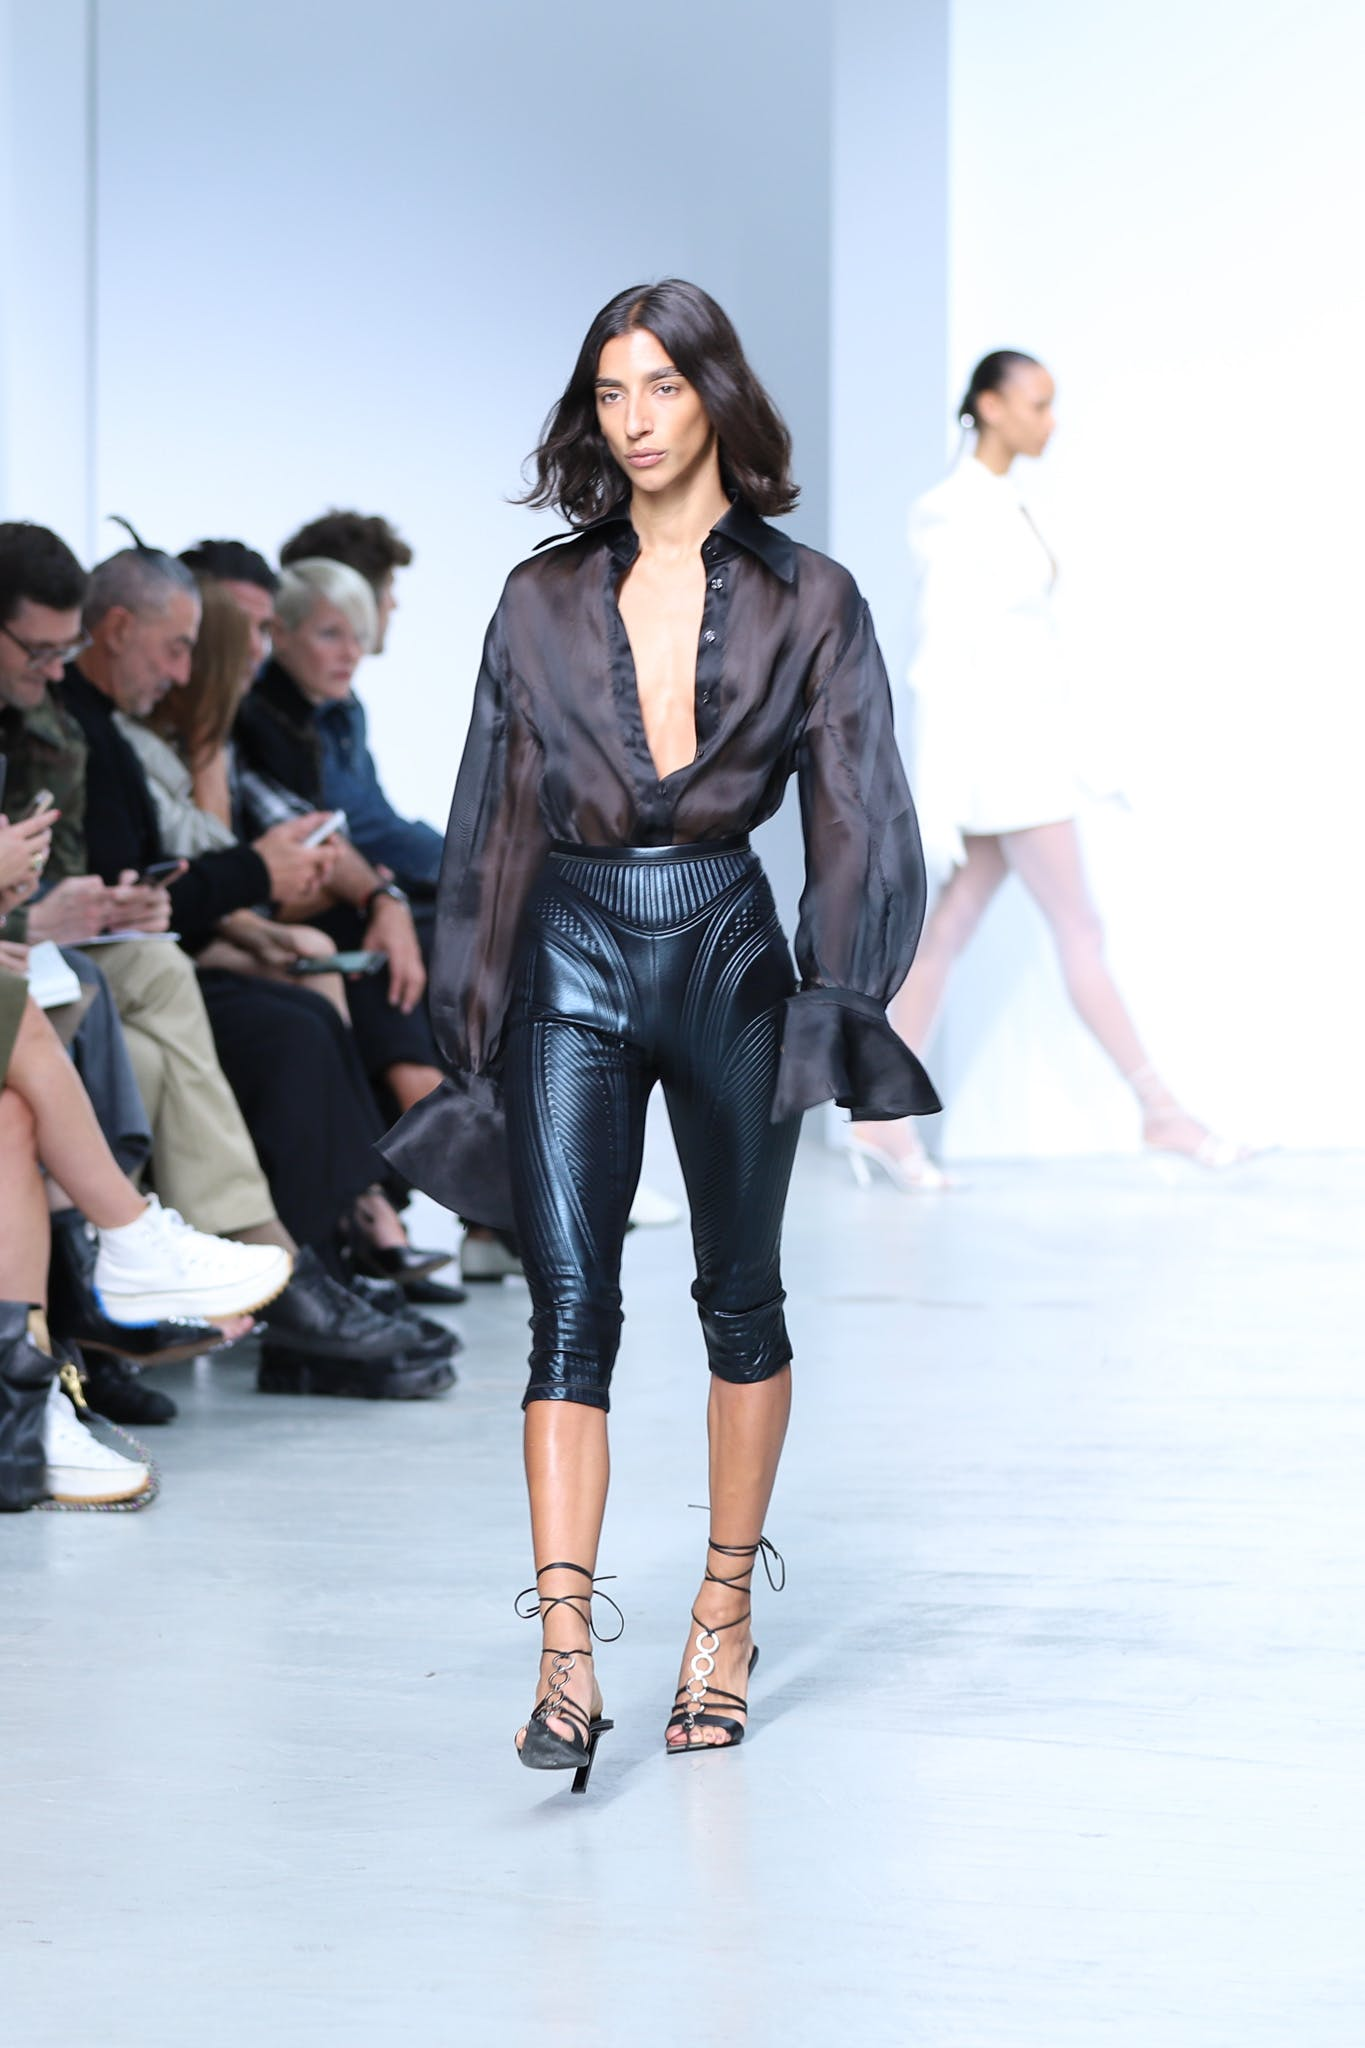 Mugler Runway Long Sleeve Sheer Button Up Bodysuit Three Quarter Length Suba Leggings in Black Leather Tie Up Heels in Black Spring 20 RTW